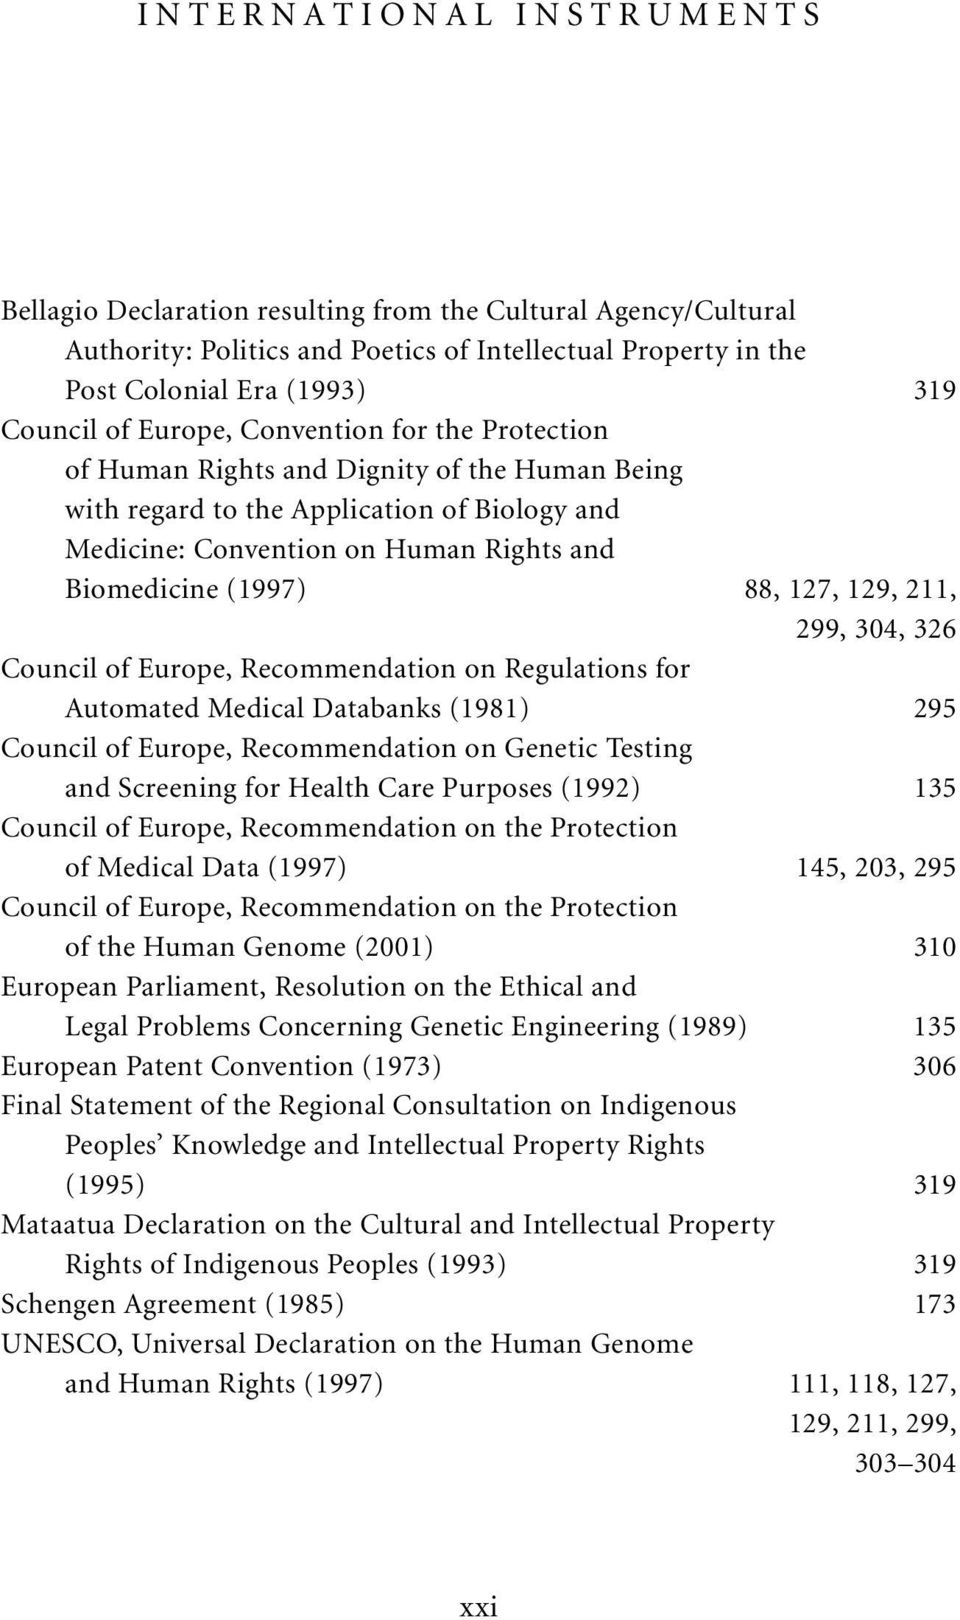 129, 211, 299, 304, 326 Council of Europe, Recommendation on Regulations for Automated Medical Databanks (1981) 295 Council of Europe, Recommendation on Genetic Testing and Screening for Health Care